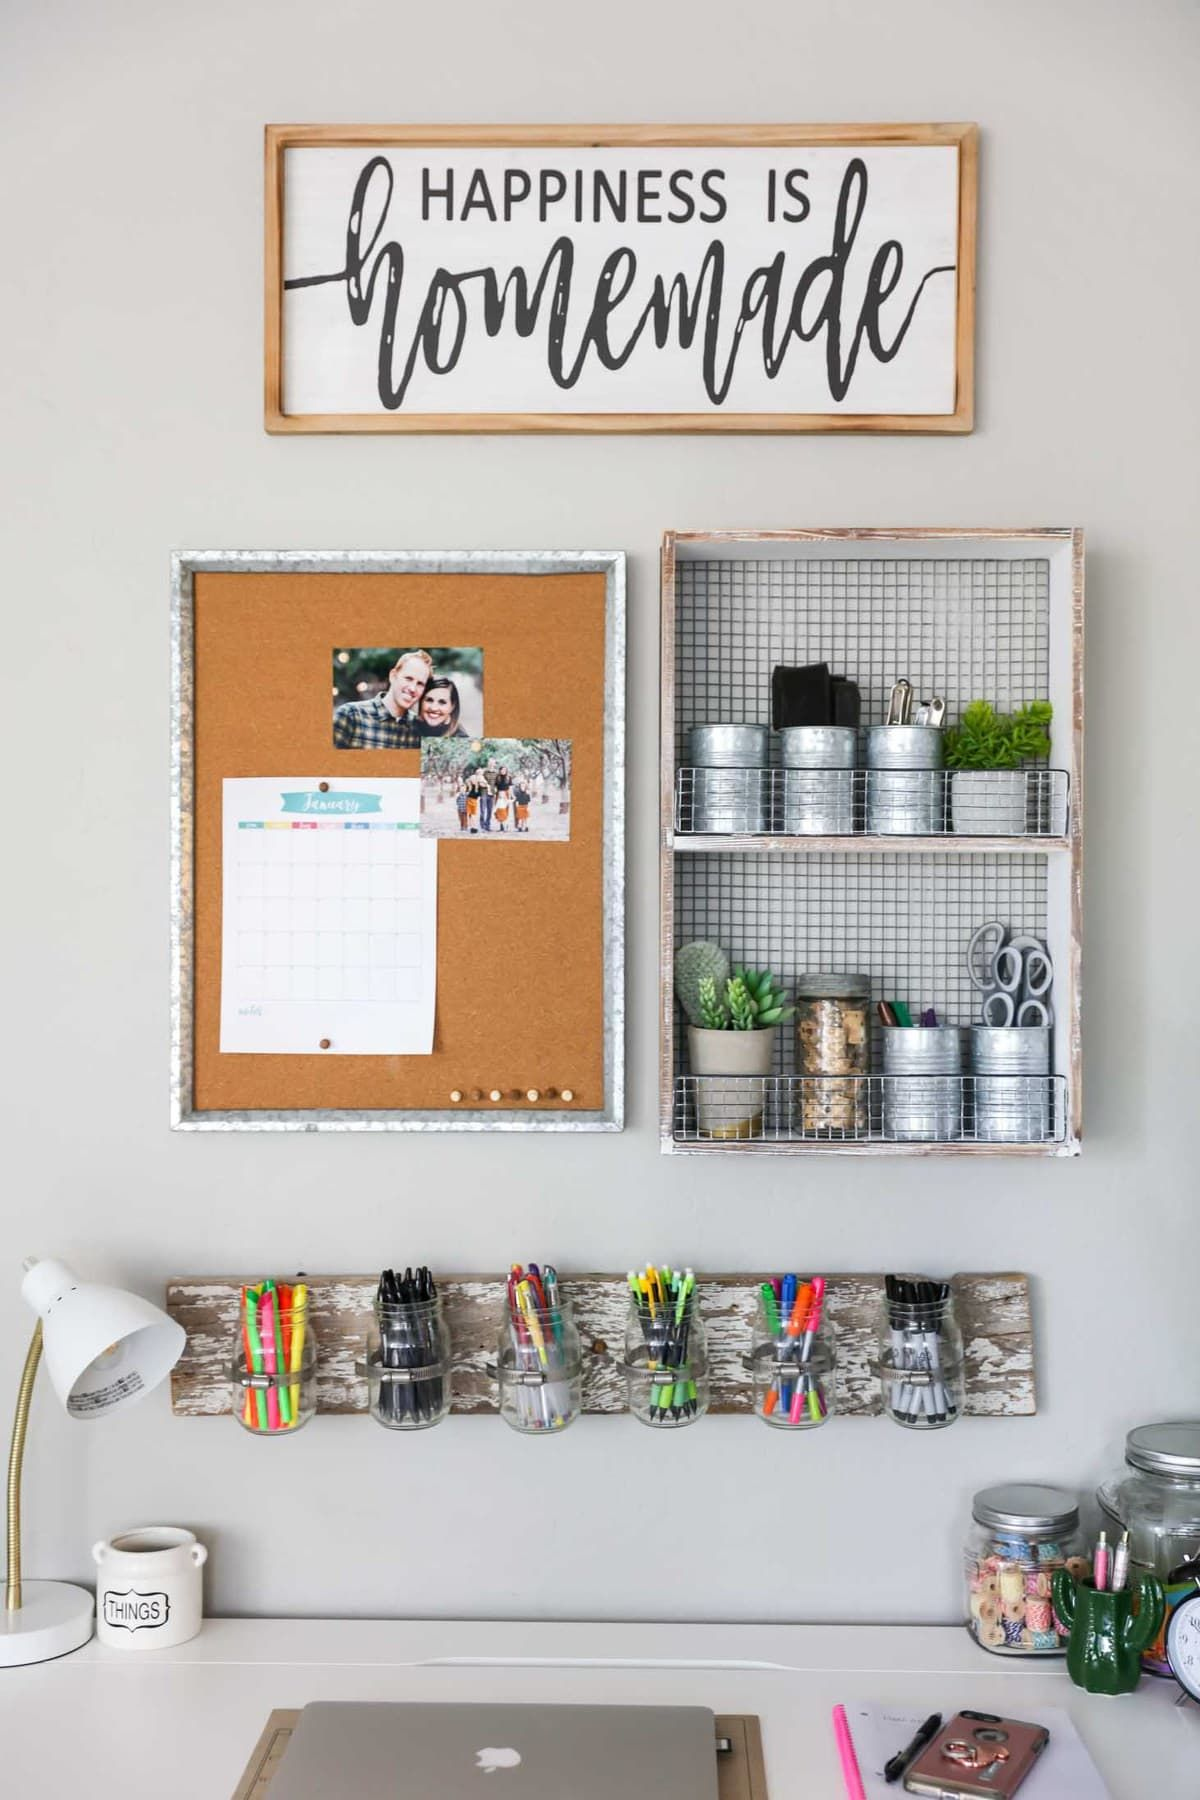 18 Easy Desk Organization Ideas - How to Organize Your Home Office